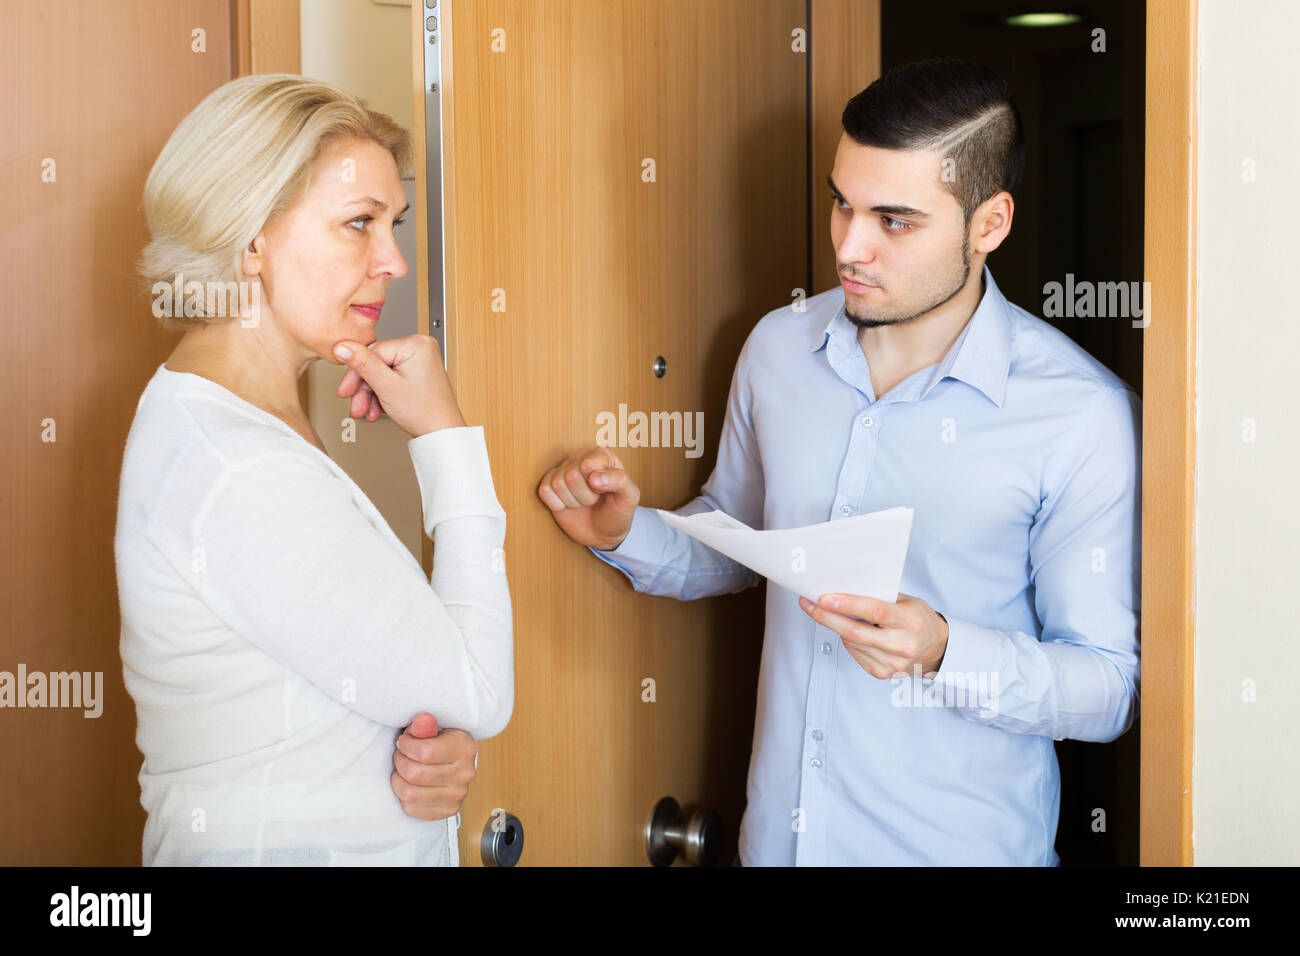 Young collector is trying to get the arrears from woman at home door - Stock Image